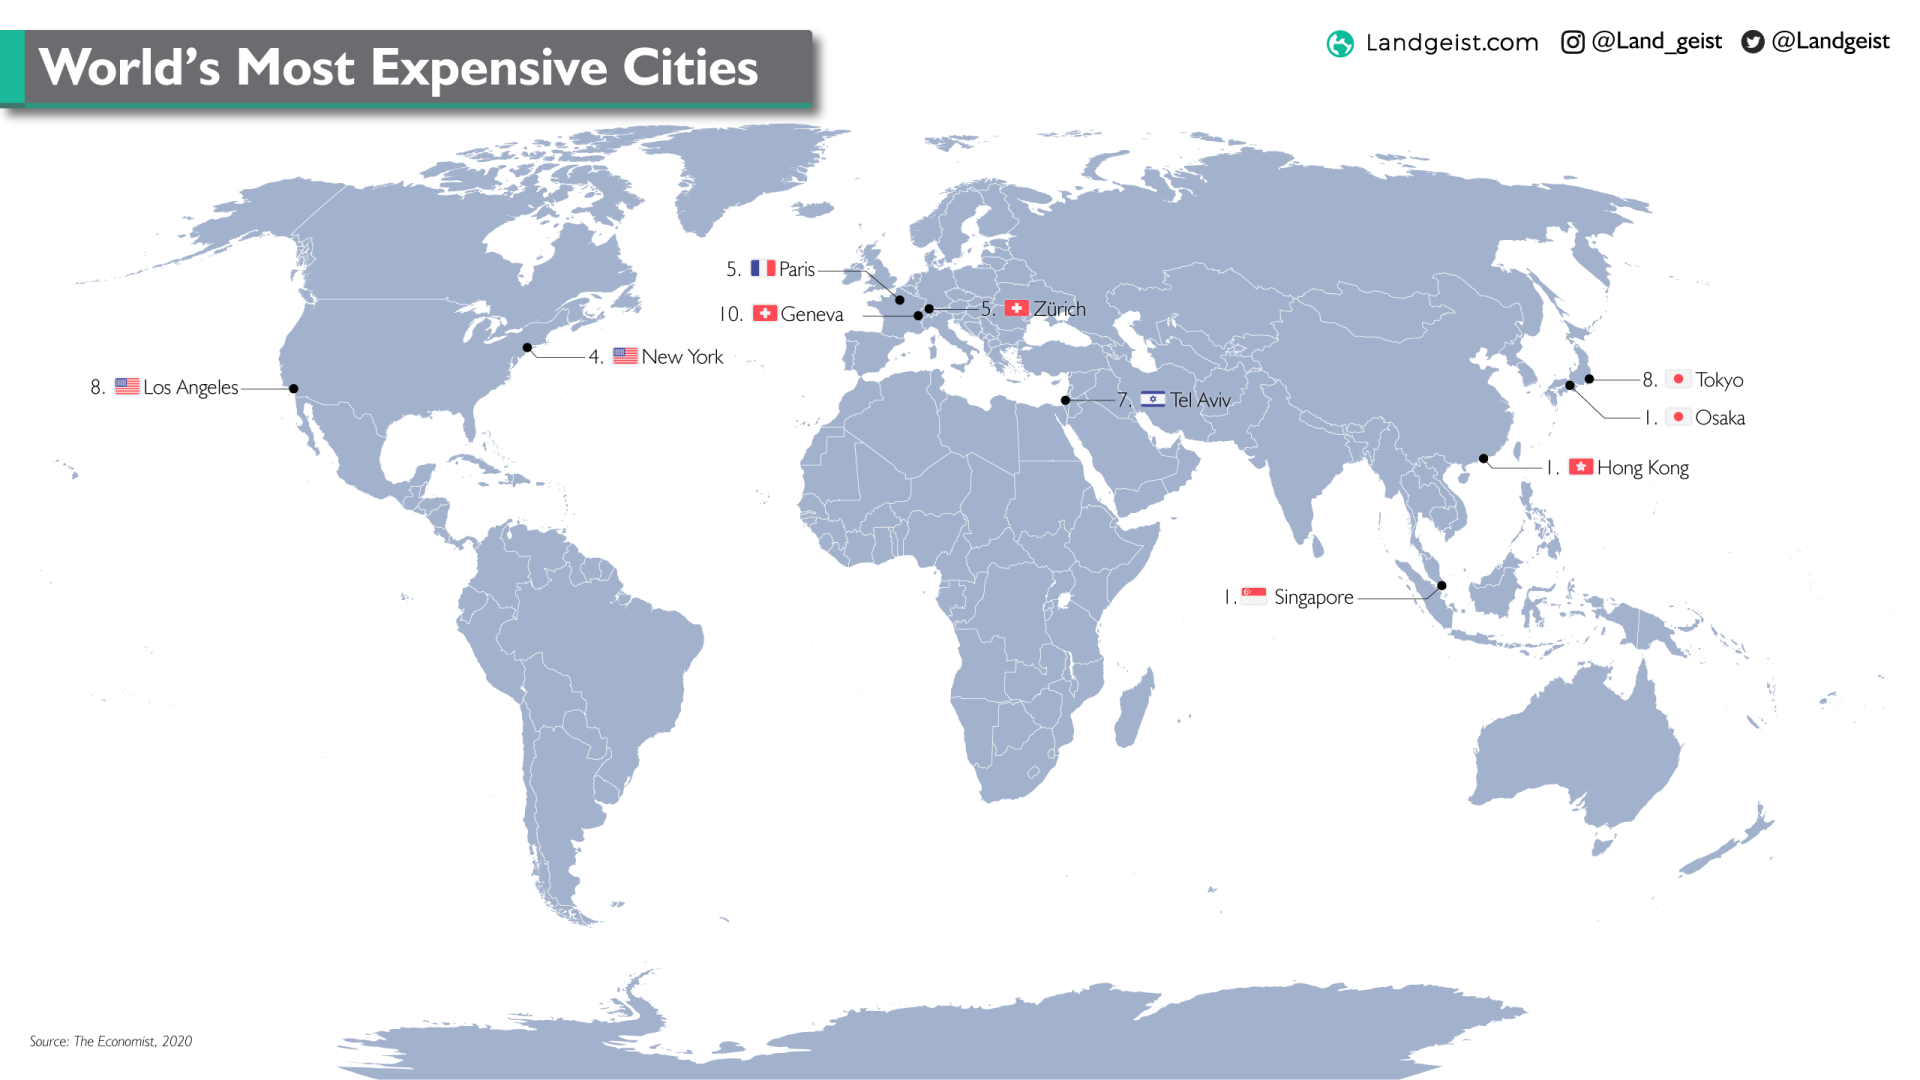 Map of the most expensive cities in the world.